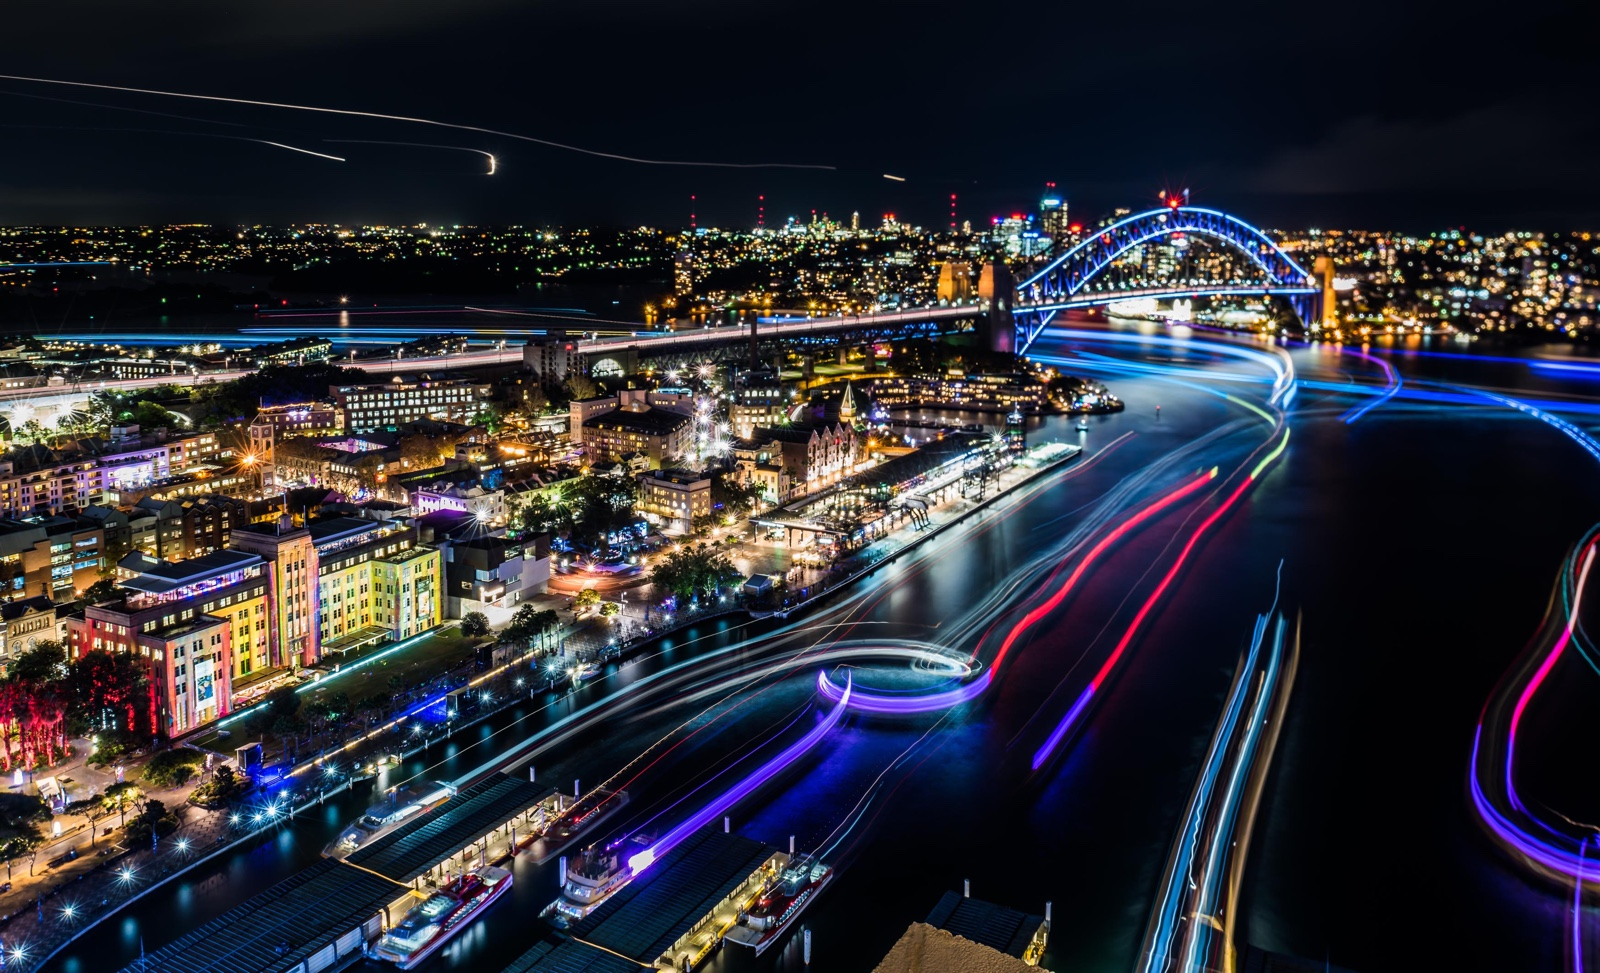 Sydney Harbour lights up from 6pm each evening during Vivid